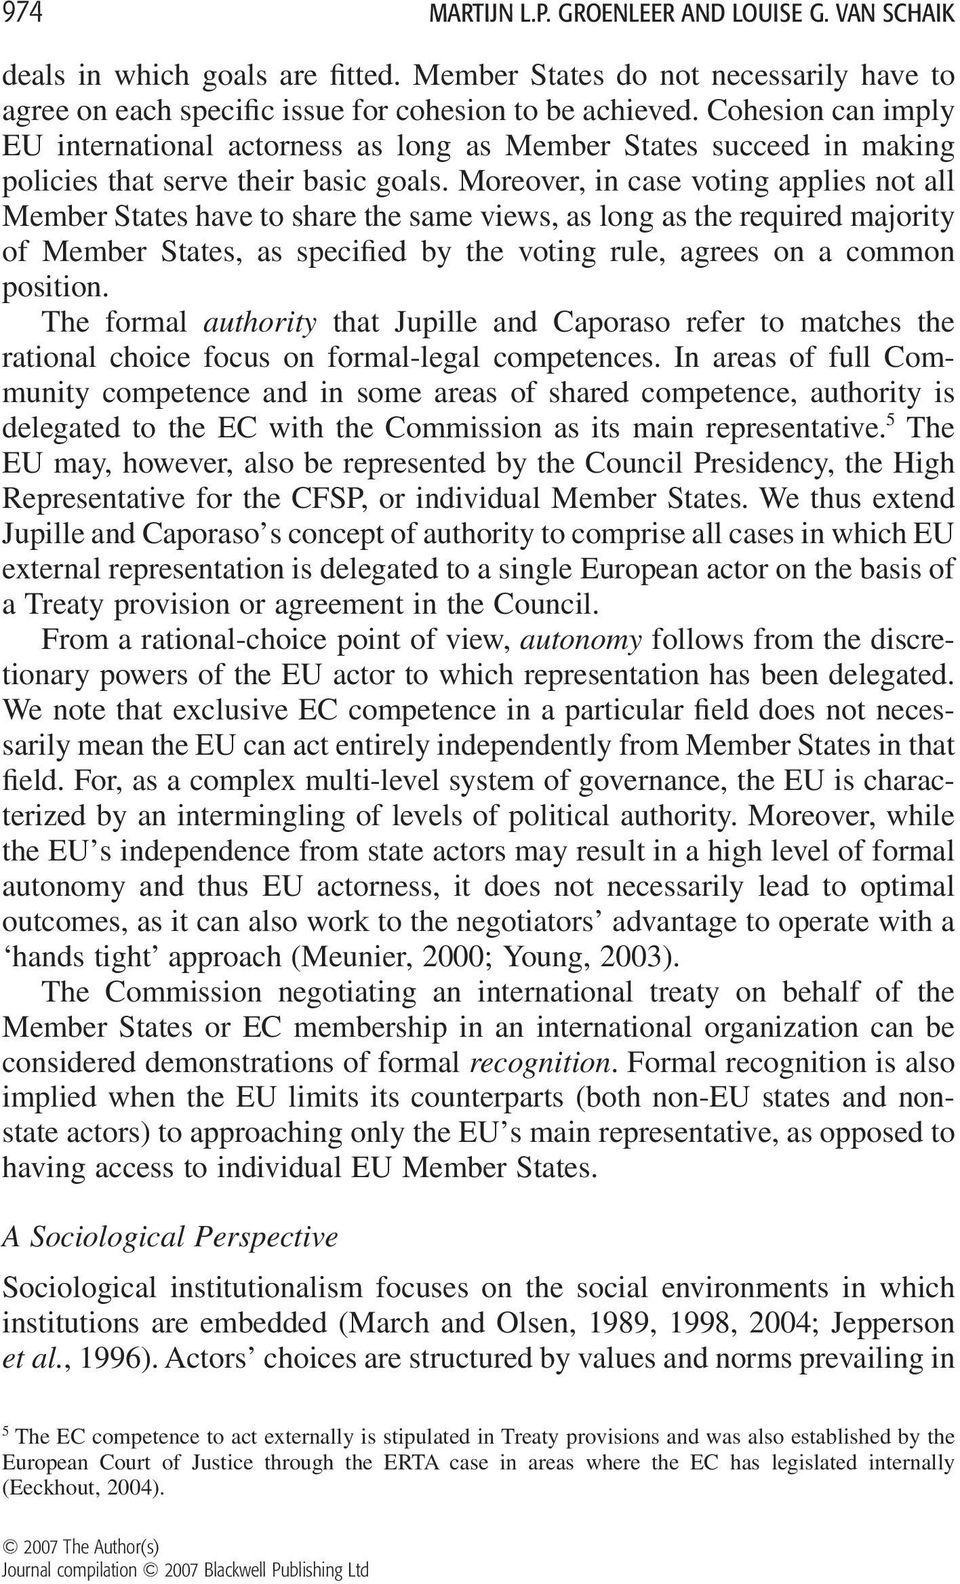 Moreover, in case voting applies not all Member States have to share the same views, as long as the required majority of Member States, as specified by the voting rule, agrees on a common position.